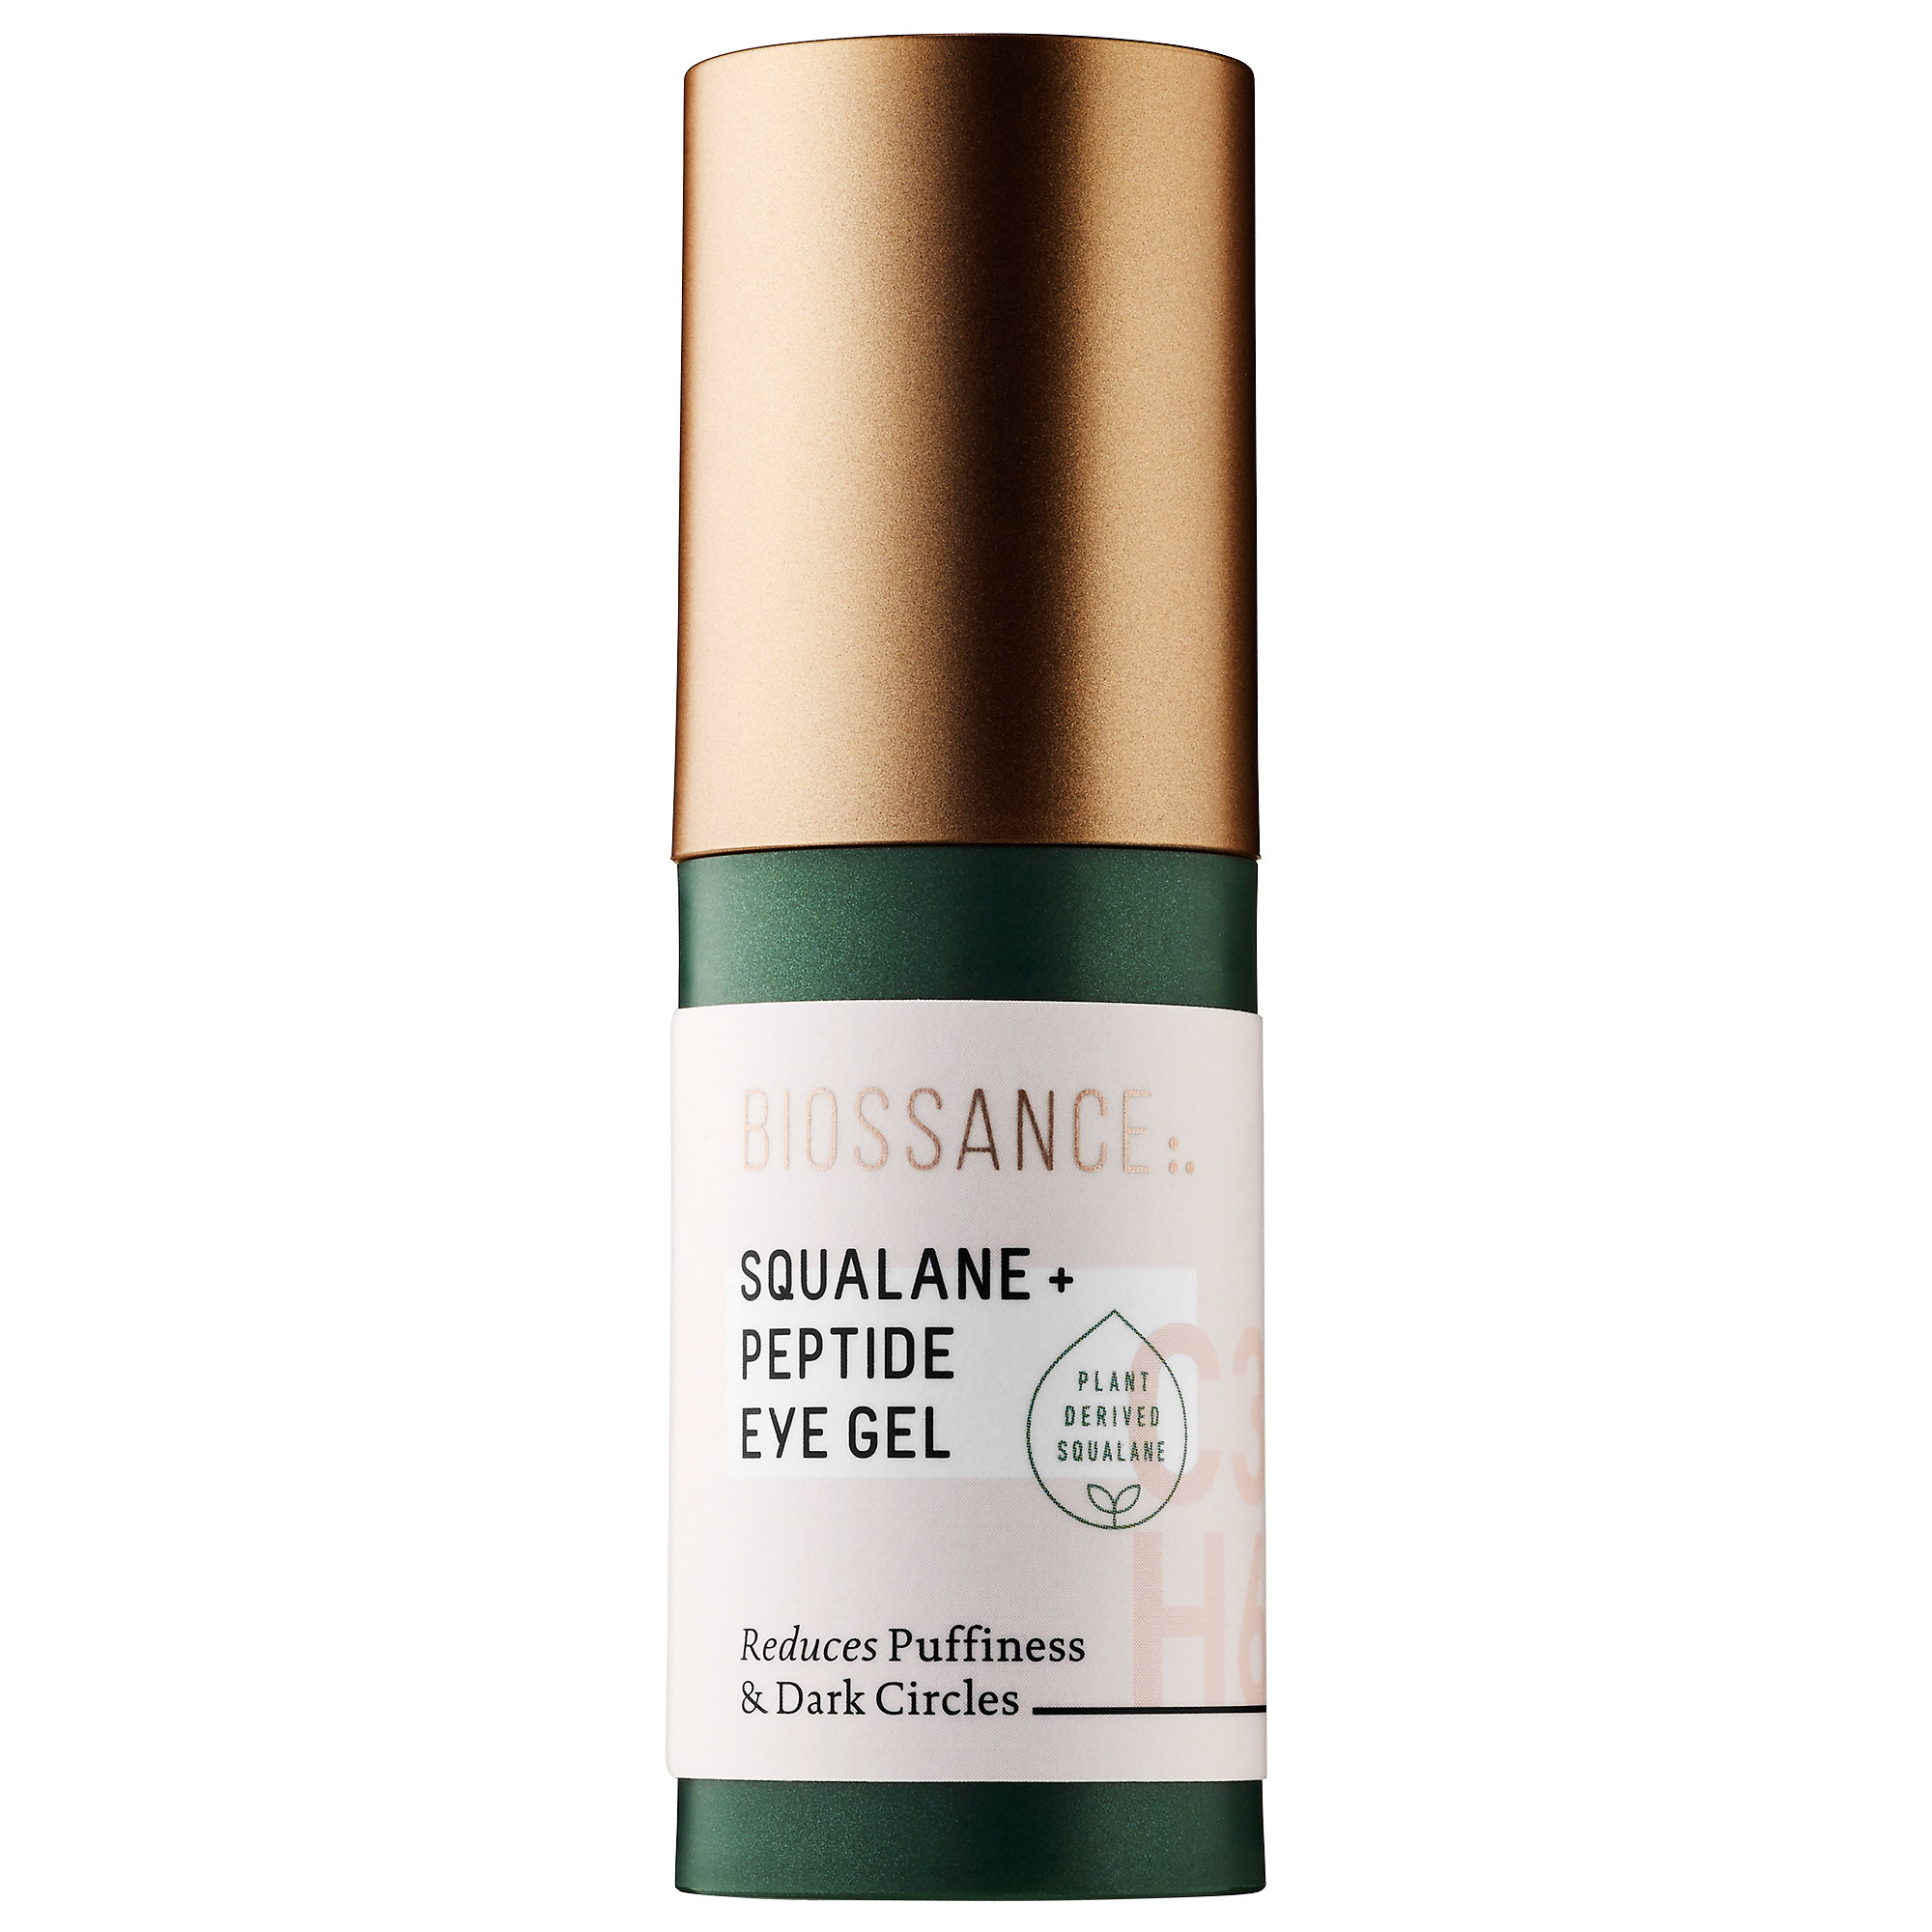 There's a reason why this eye gel is a best seller.  It packs a punch by reducing dark circles and puffiness all at once. Dap a small amount under your eyes and before your concealer.  You'll be looking fresh and awake all day.